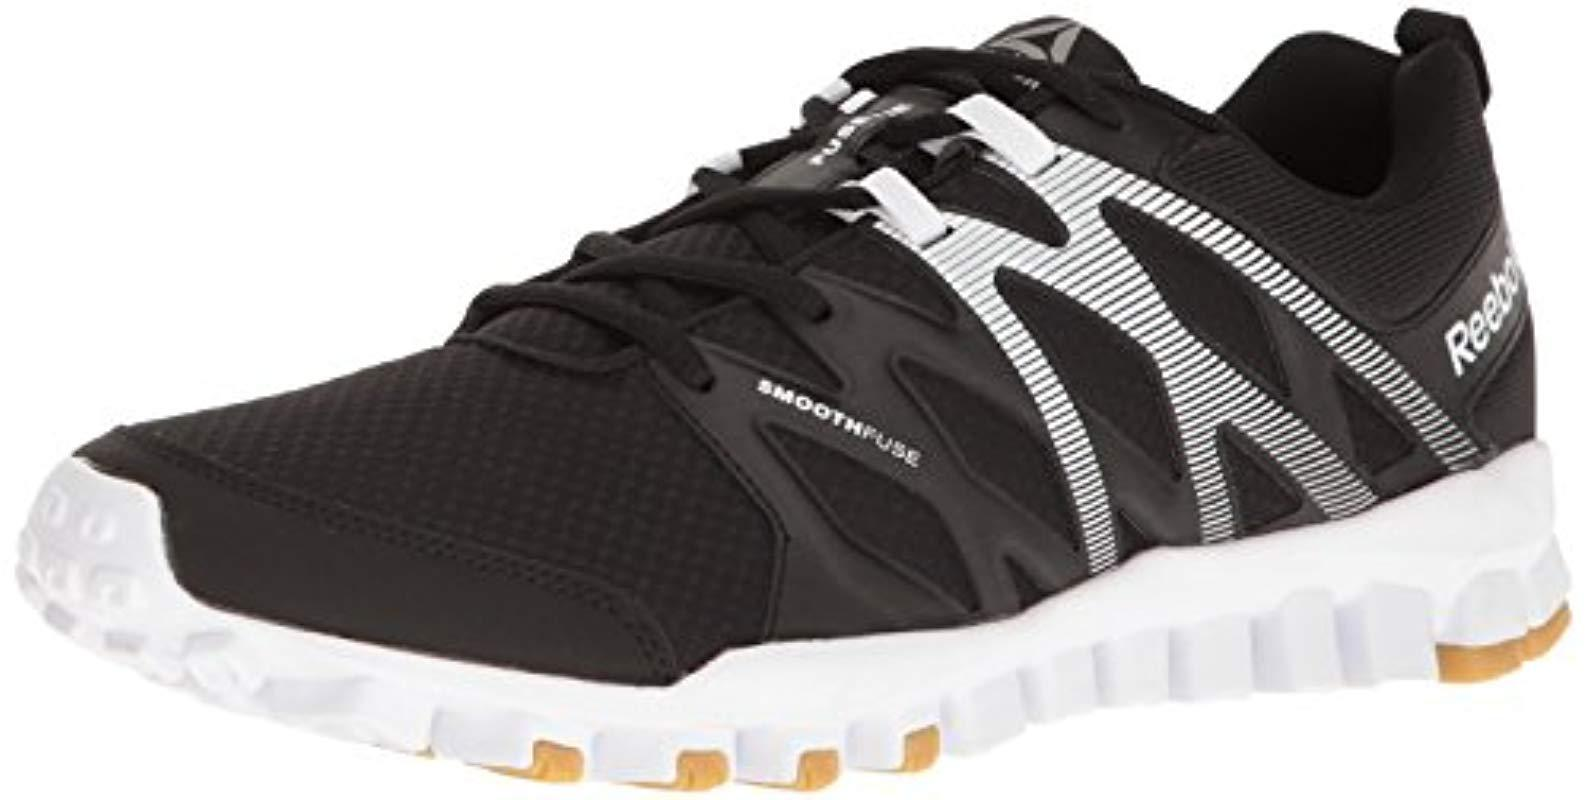 Lyst - Reebok Realflex Train 4.0 Running Shoe in Black for Men ... 9773e5881